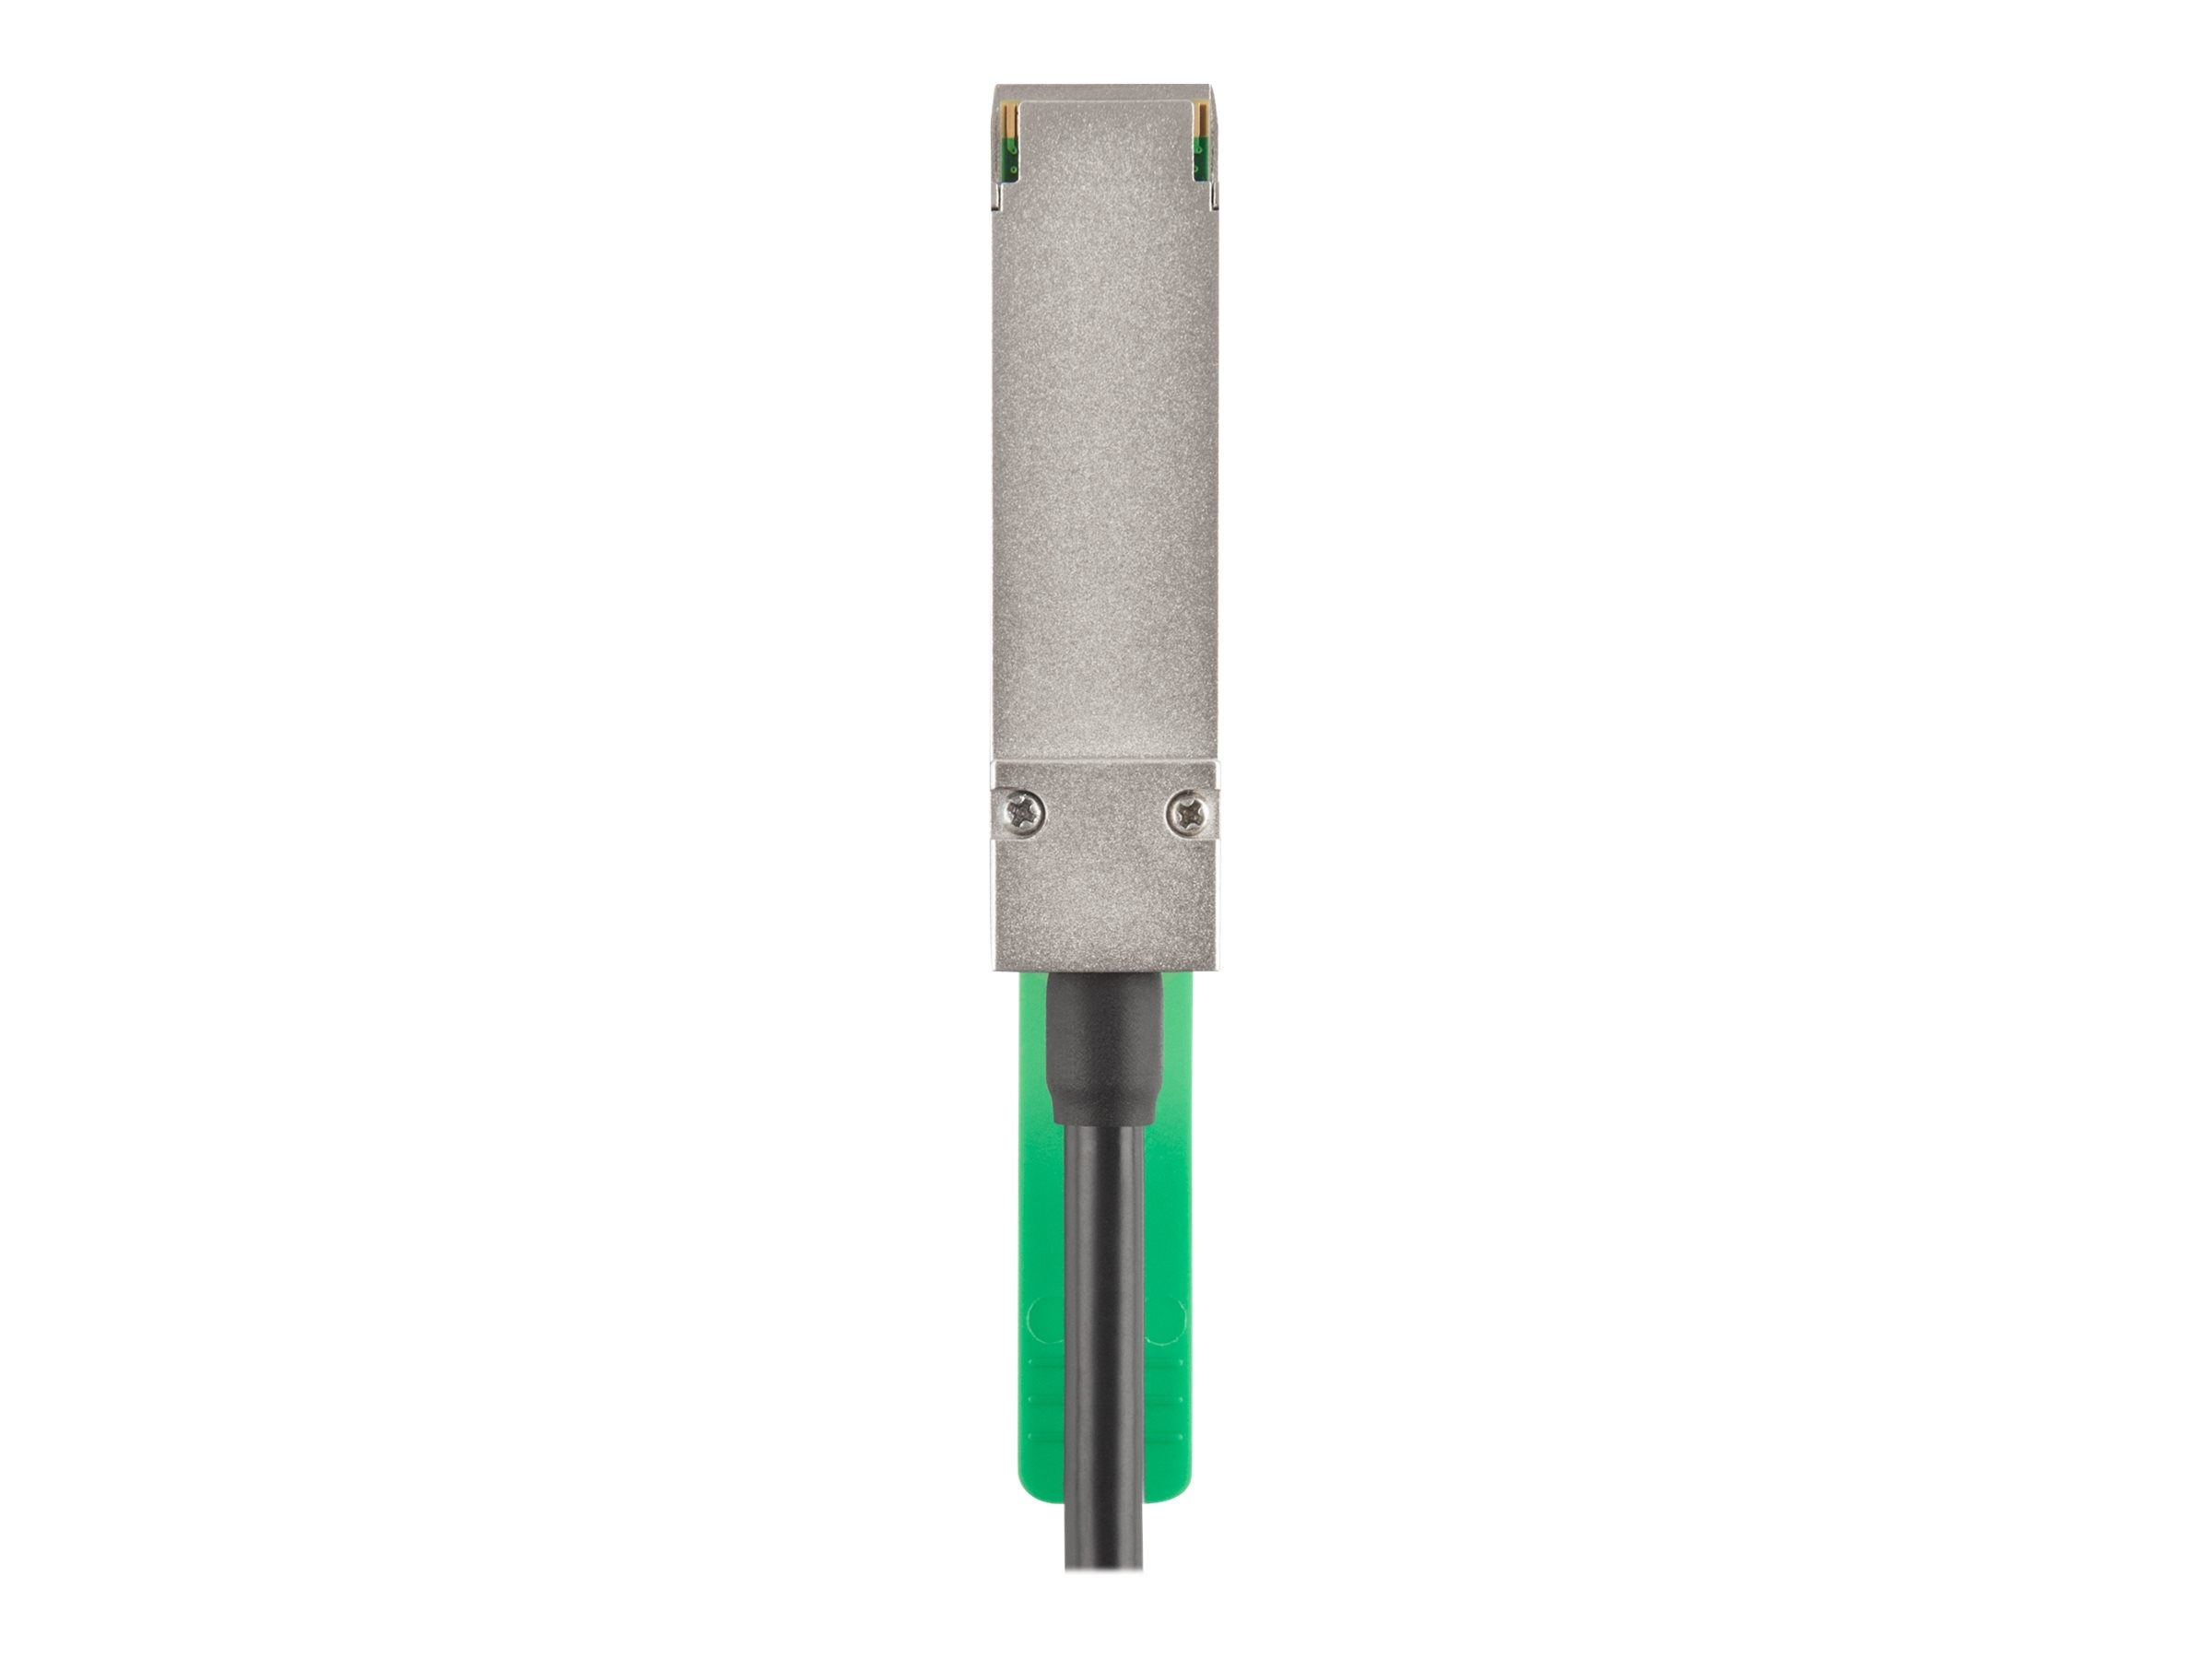 Belkin QSFP+ 40Gbase Direct Attach Passive Twinaxial Cable, 5m, F2CX037-05M